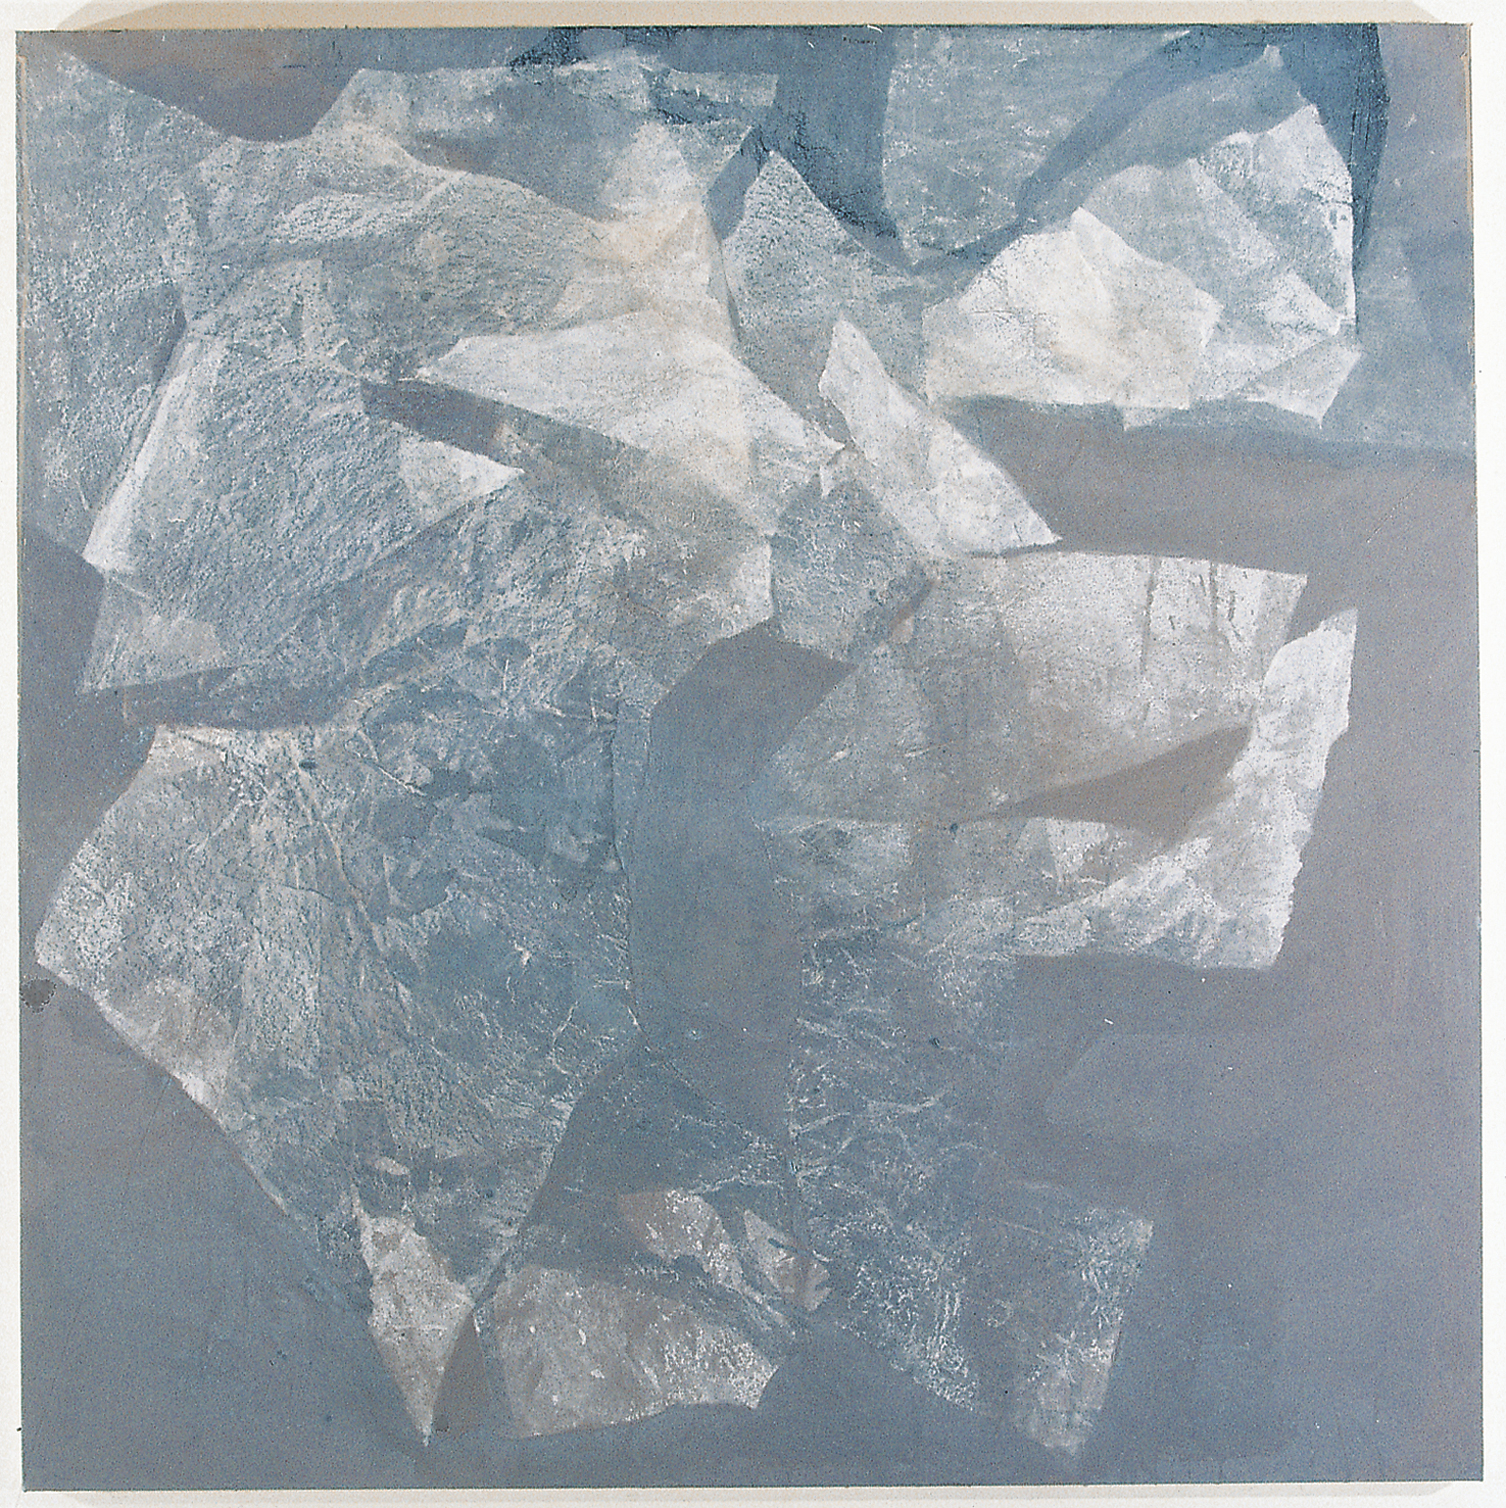 SoHyun Bae, Wrapped Shards #10, 2002, rice-paper and pure pigment on canvas, 60 x 60 inches